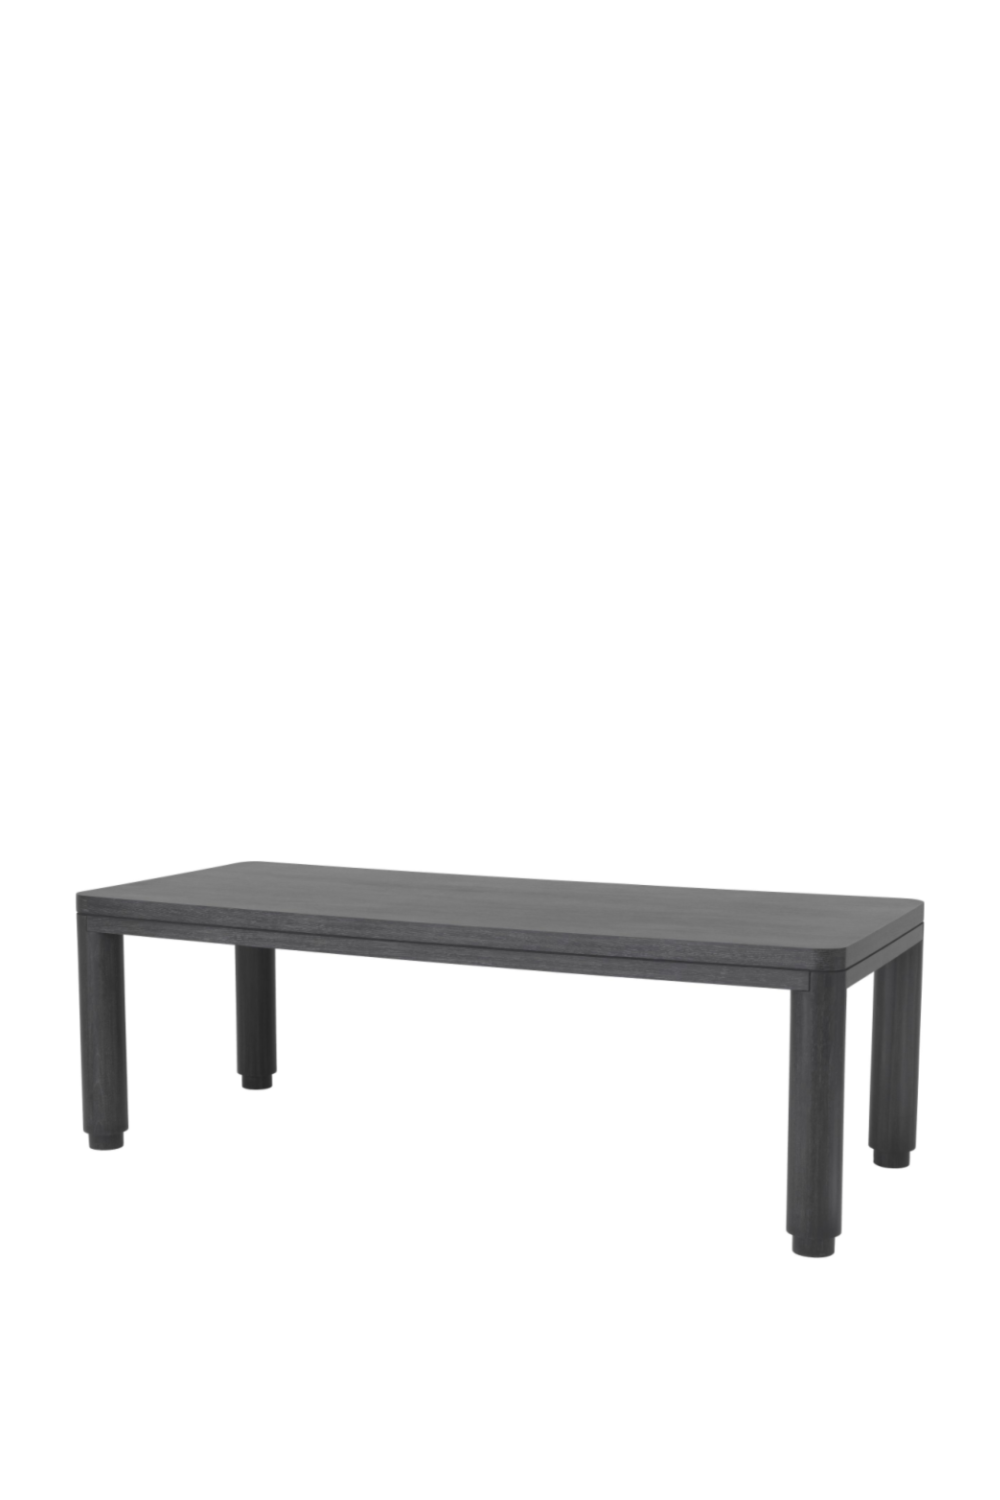 Gray Rectangular Dining Table | Eichholtz | #1 Eichholtz  Retailer